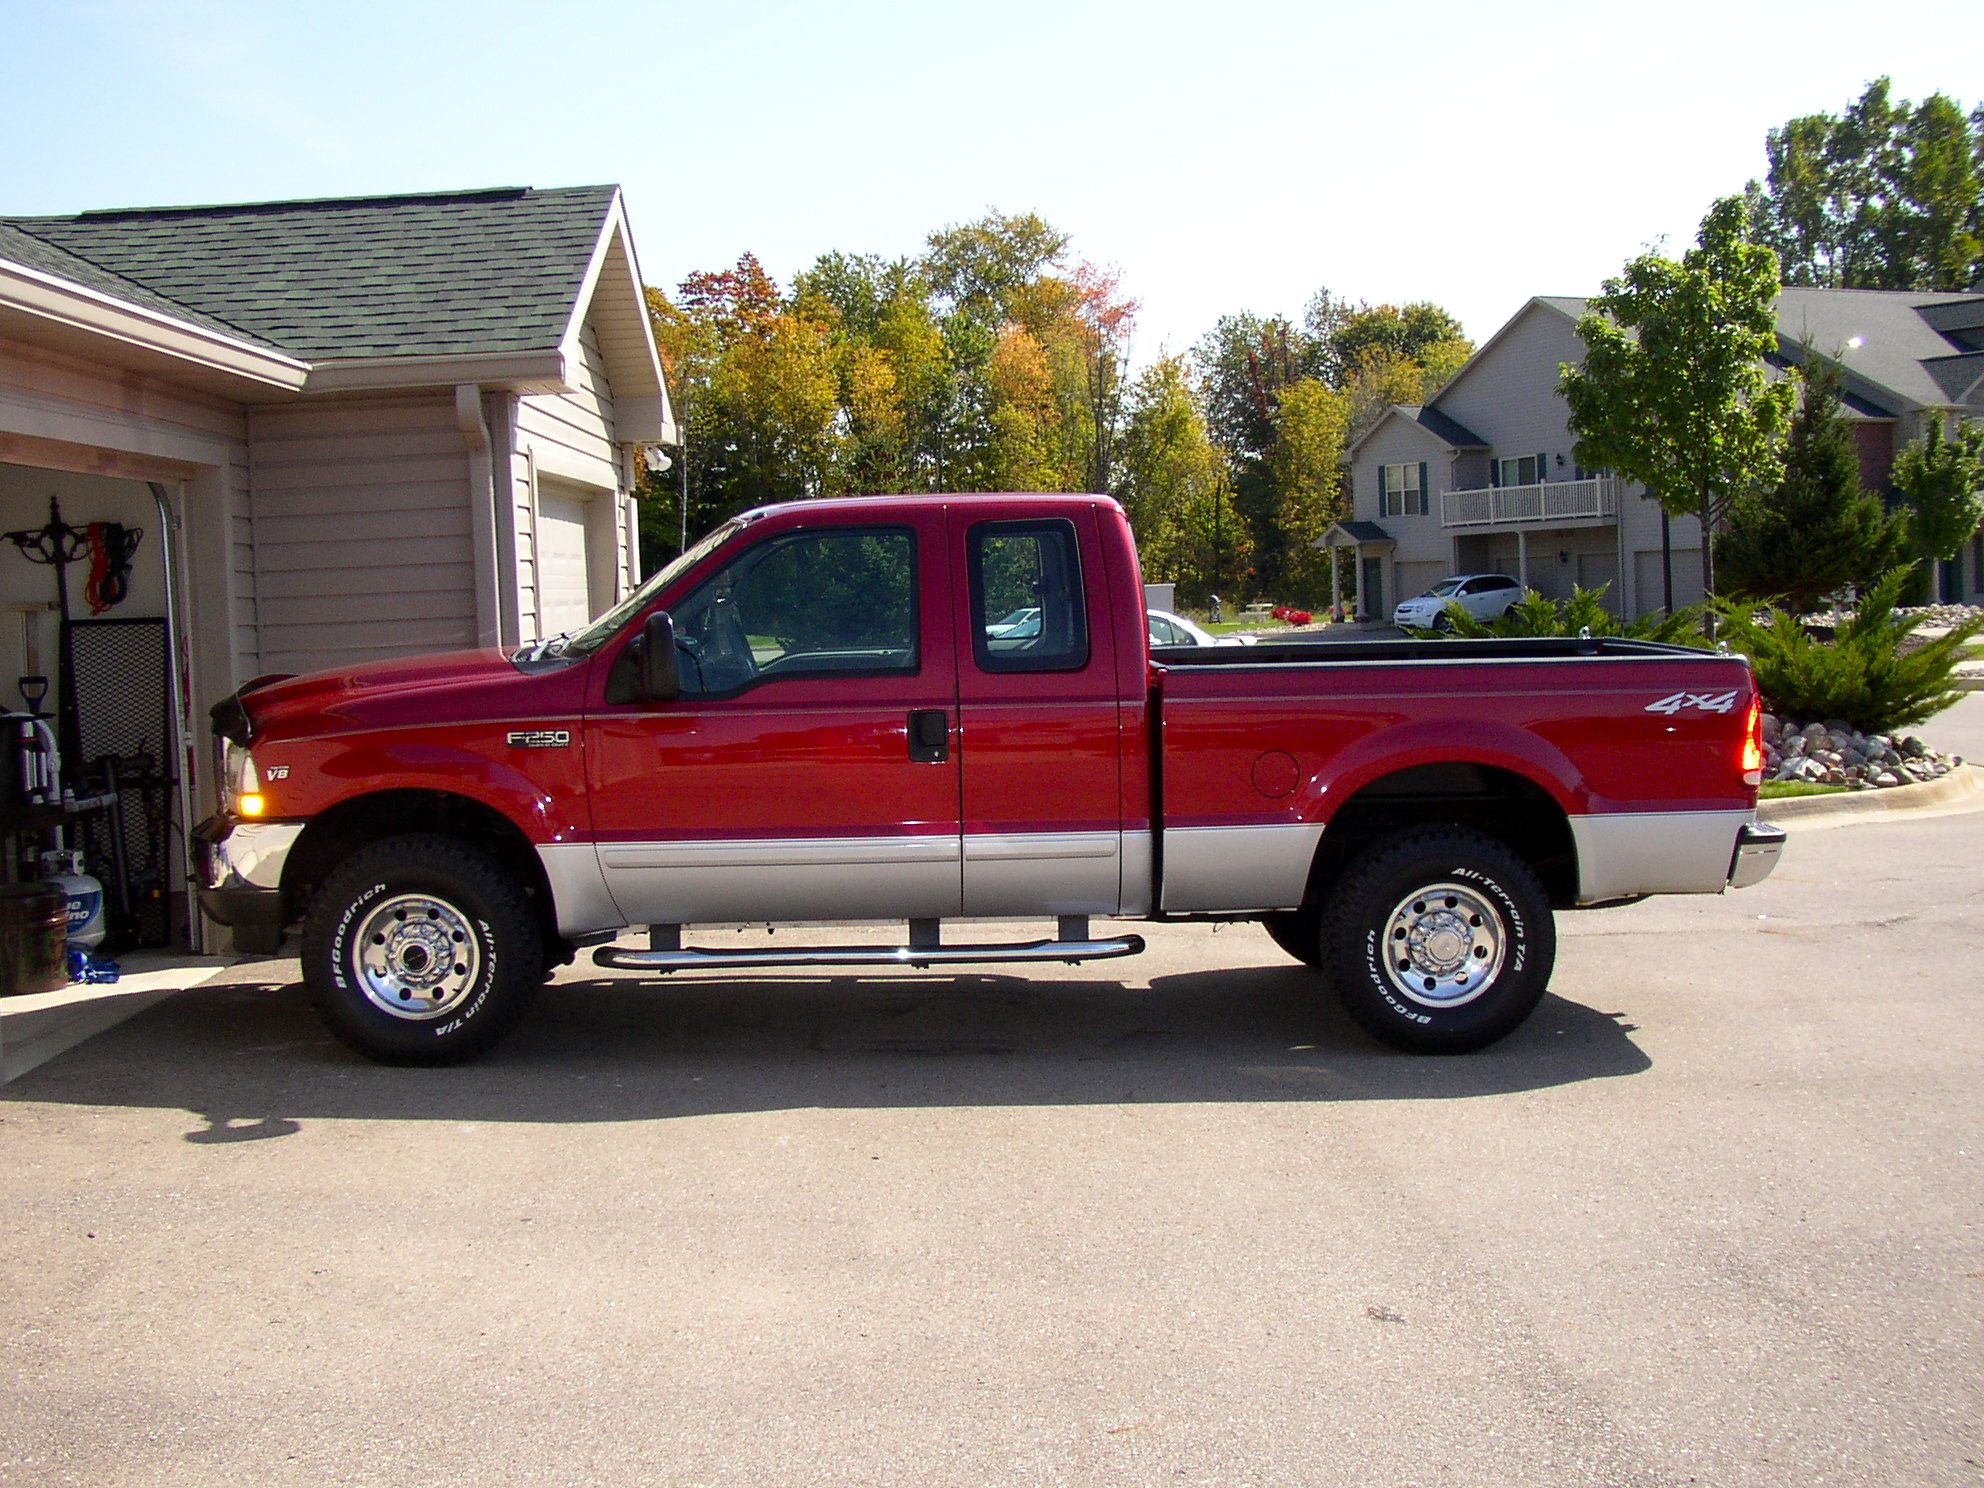 medium resolution of  9 2002 f250 super duty 4x4 4 door crew deep red wine not two toned v 10 solid bought new at ford dealership on mercury near cunningham